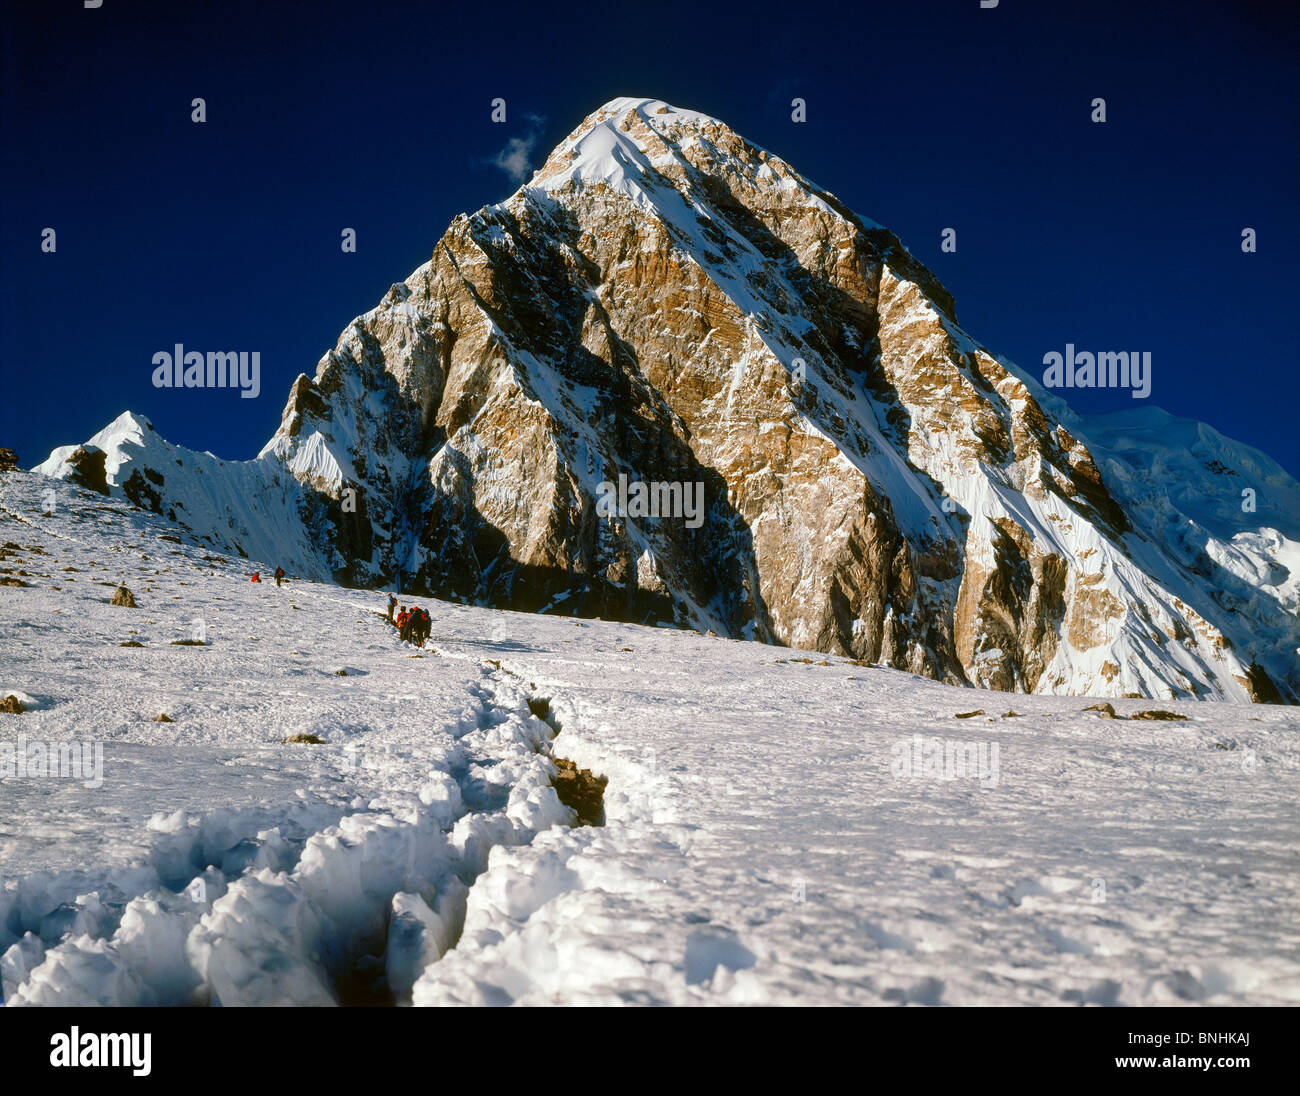 Pumori is a mountain in the Himalaya on the Nepal-Tibet border. Pumori lies Five miles west of Mount Everest. - Stock Image